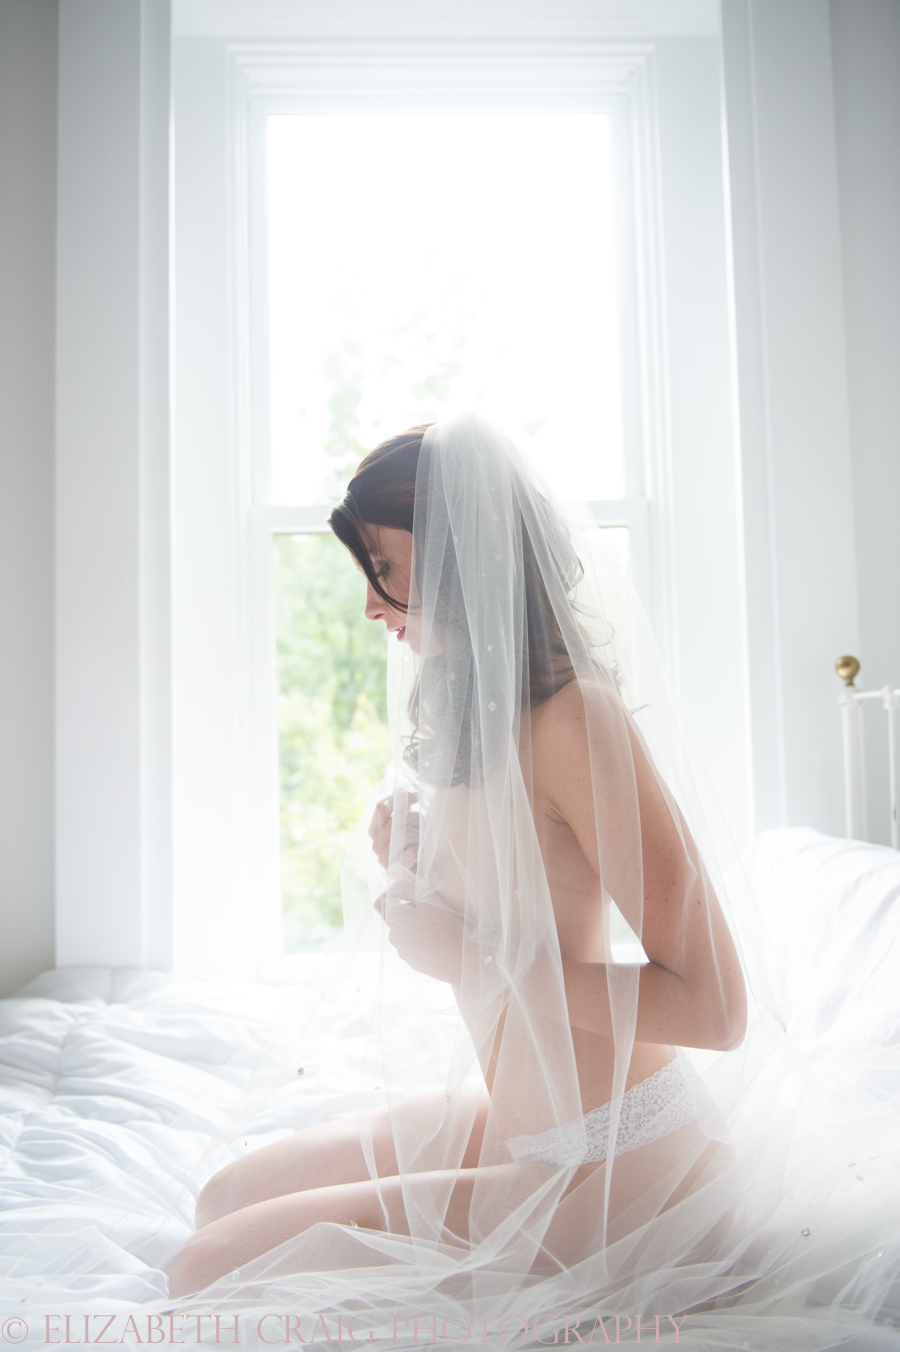 Pittsburgh Bridal Boudoir Photographer | Elizabeth Craig Photography-005